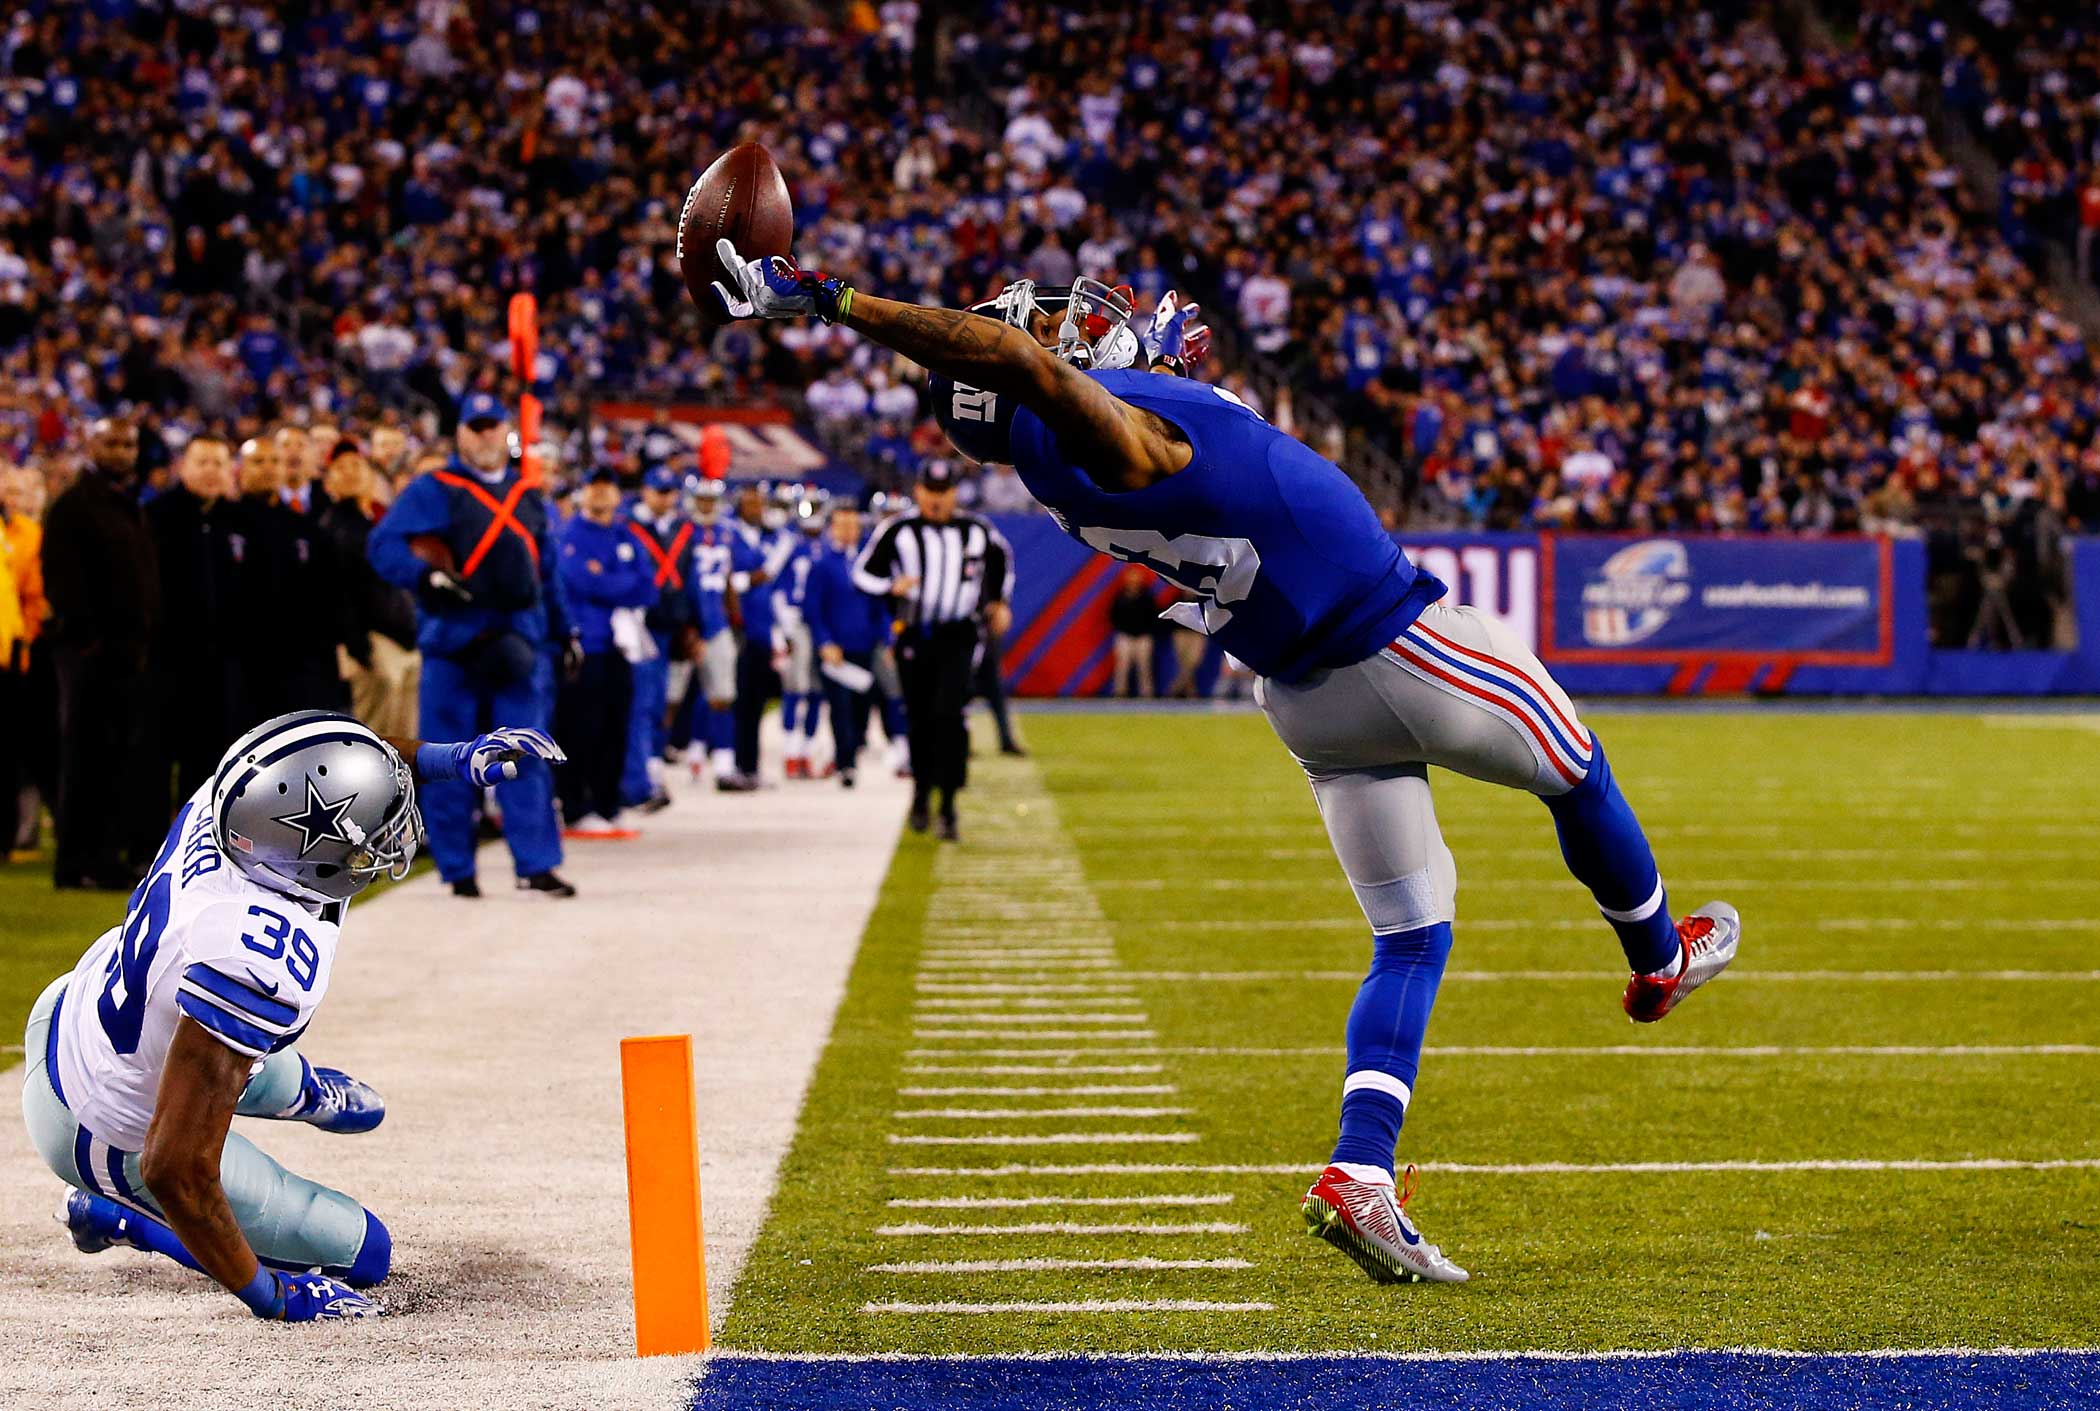 Odell Beckham of the New York Giants scores a touchdown in the second quarter against the Dallas Cowboys at [f500link]MetLife[/f500link] Stadium on Nov. 23, 2014 in East Rutherford, New Jersey.